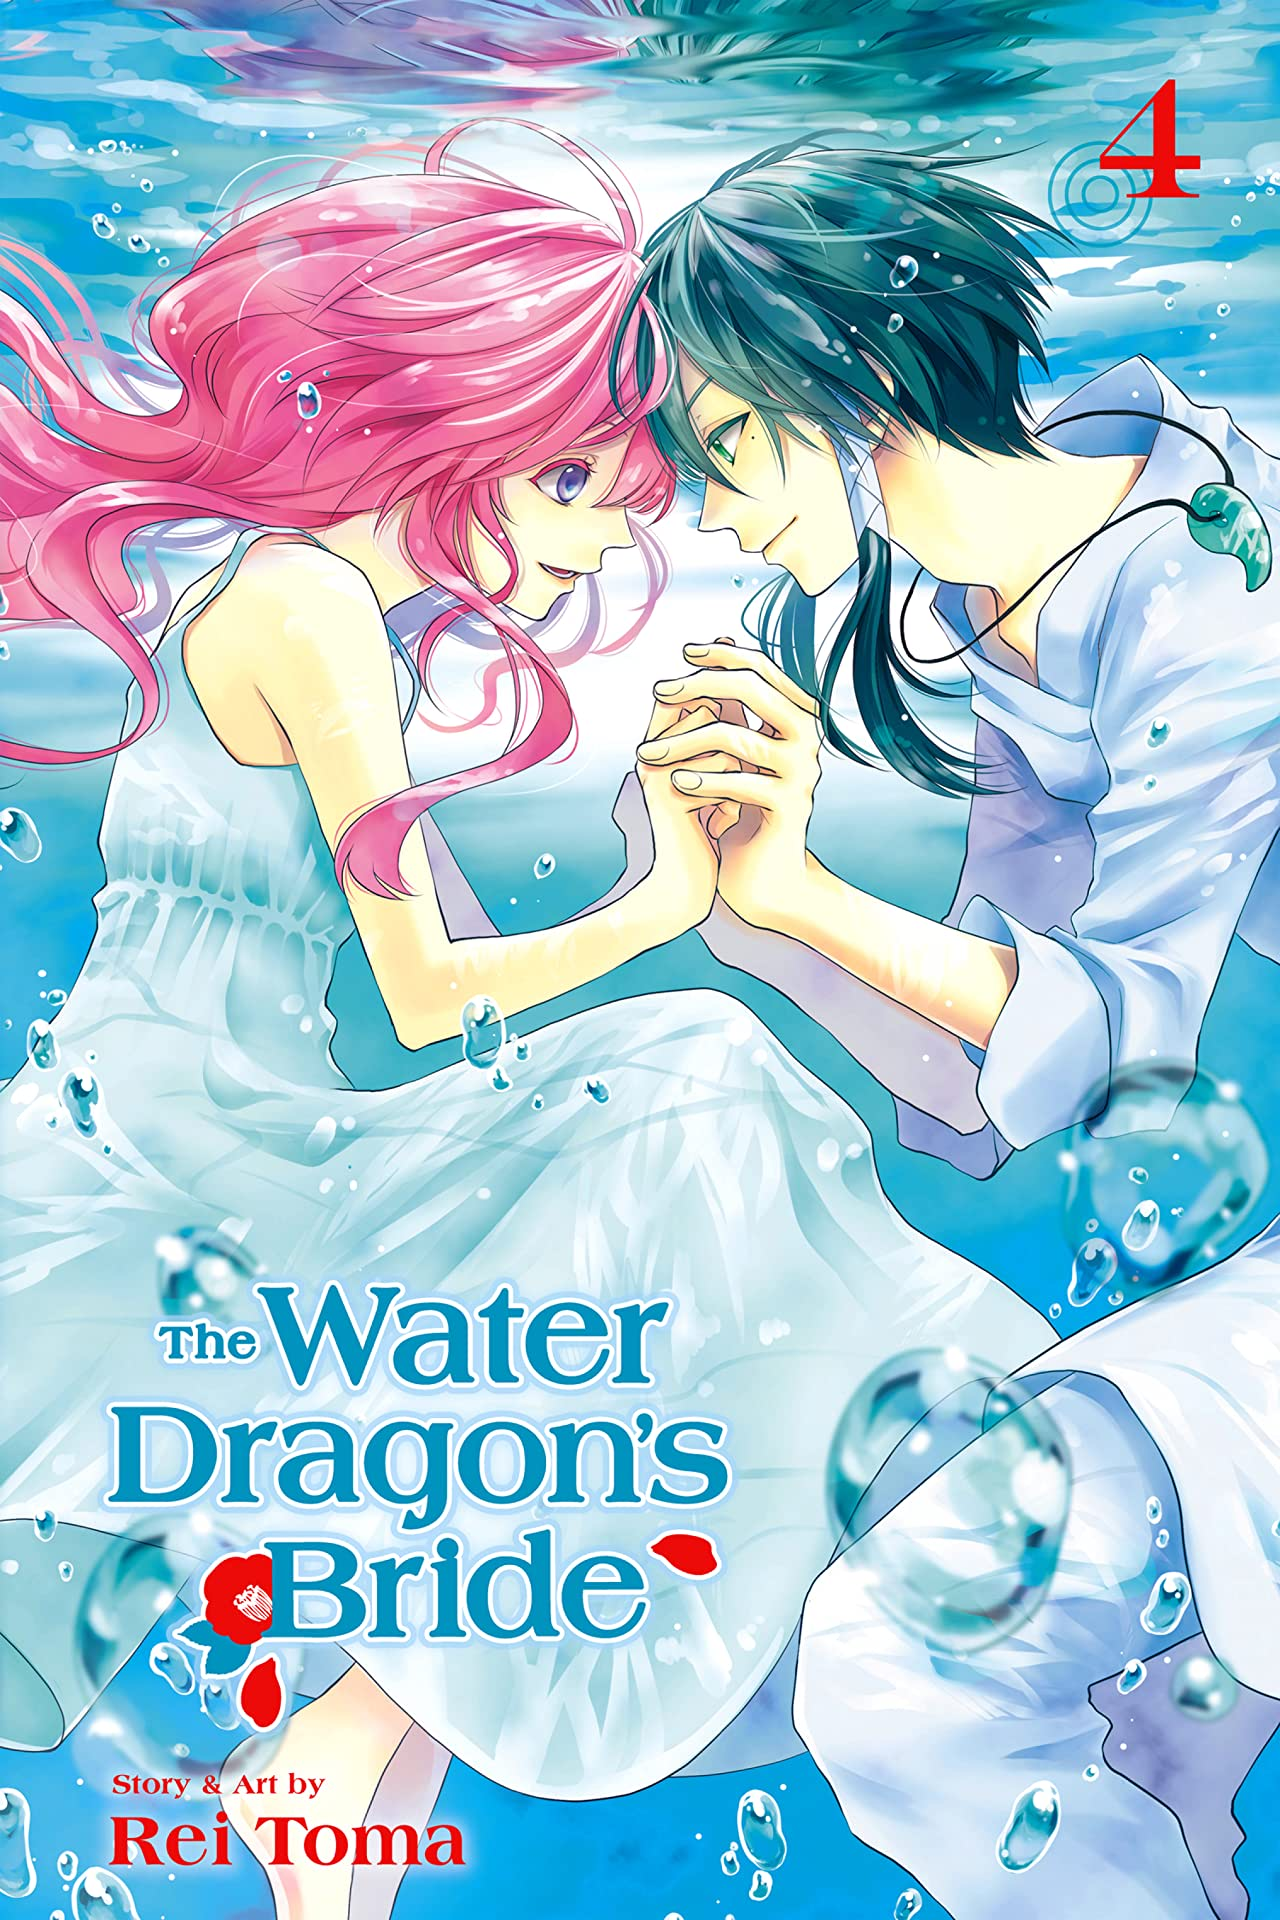 The Water Dragon's Bride Vol. 4